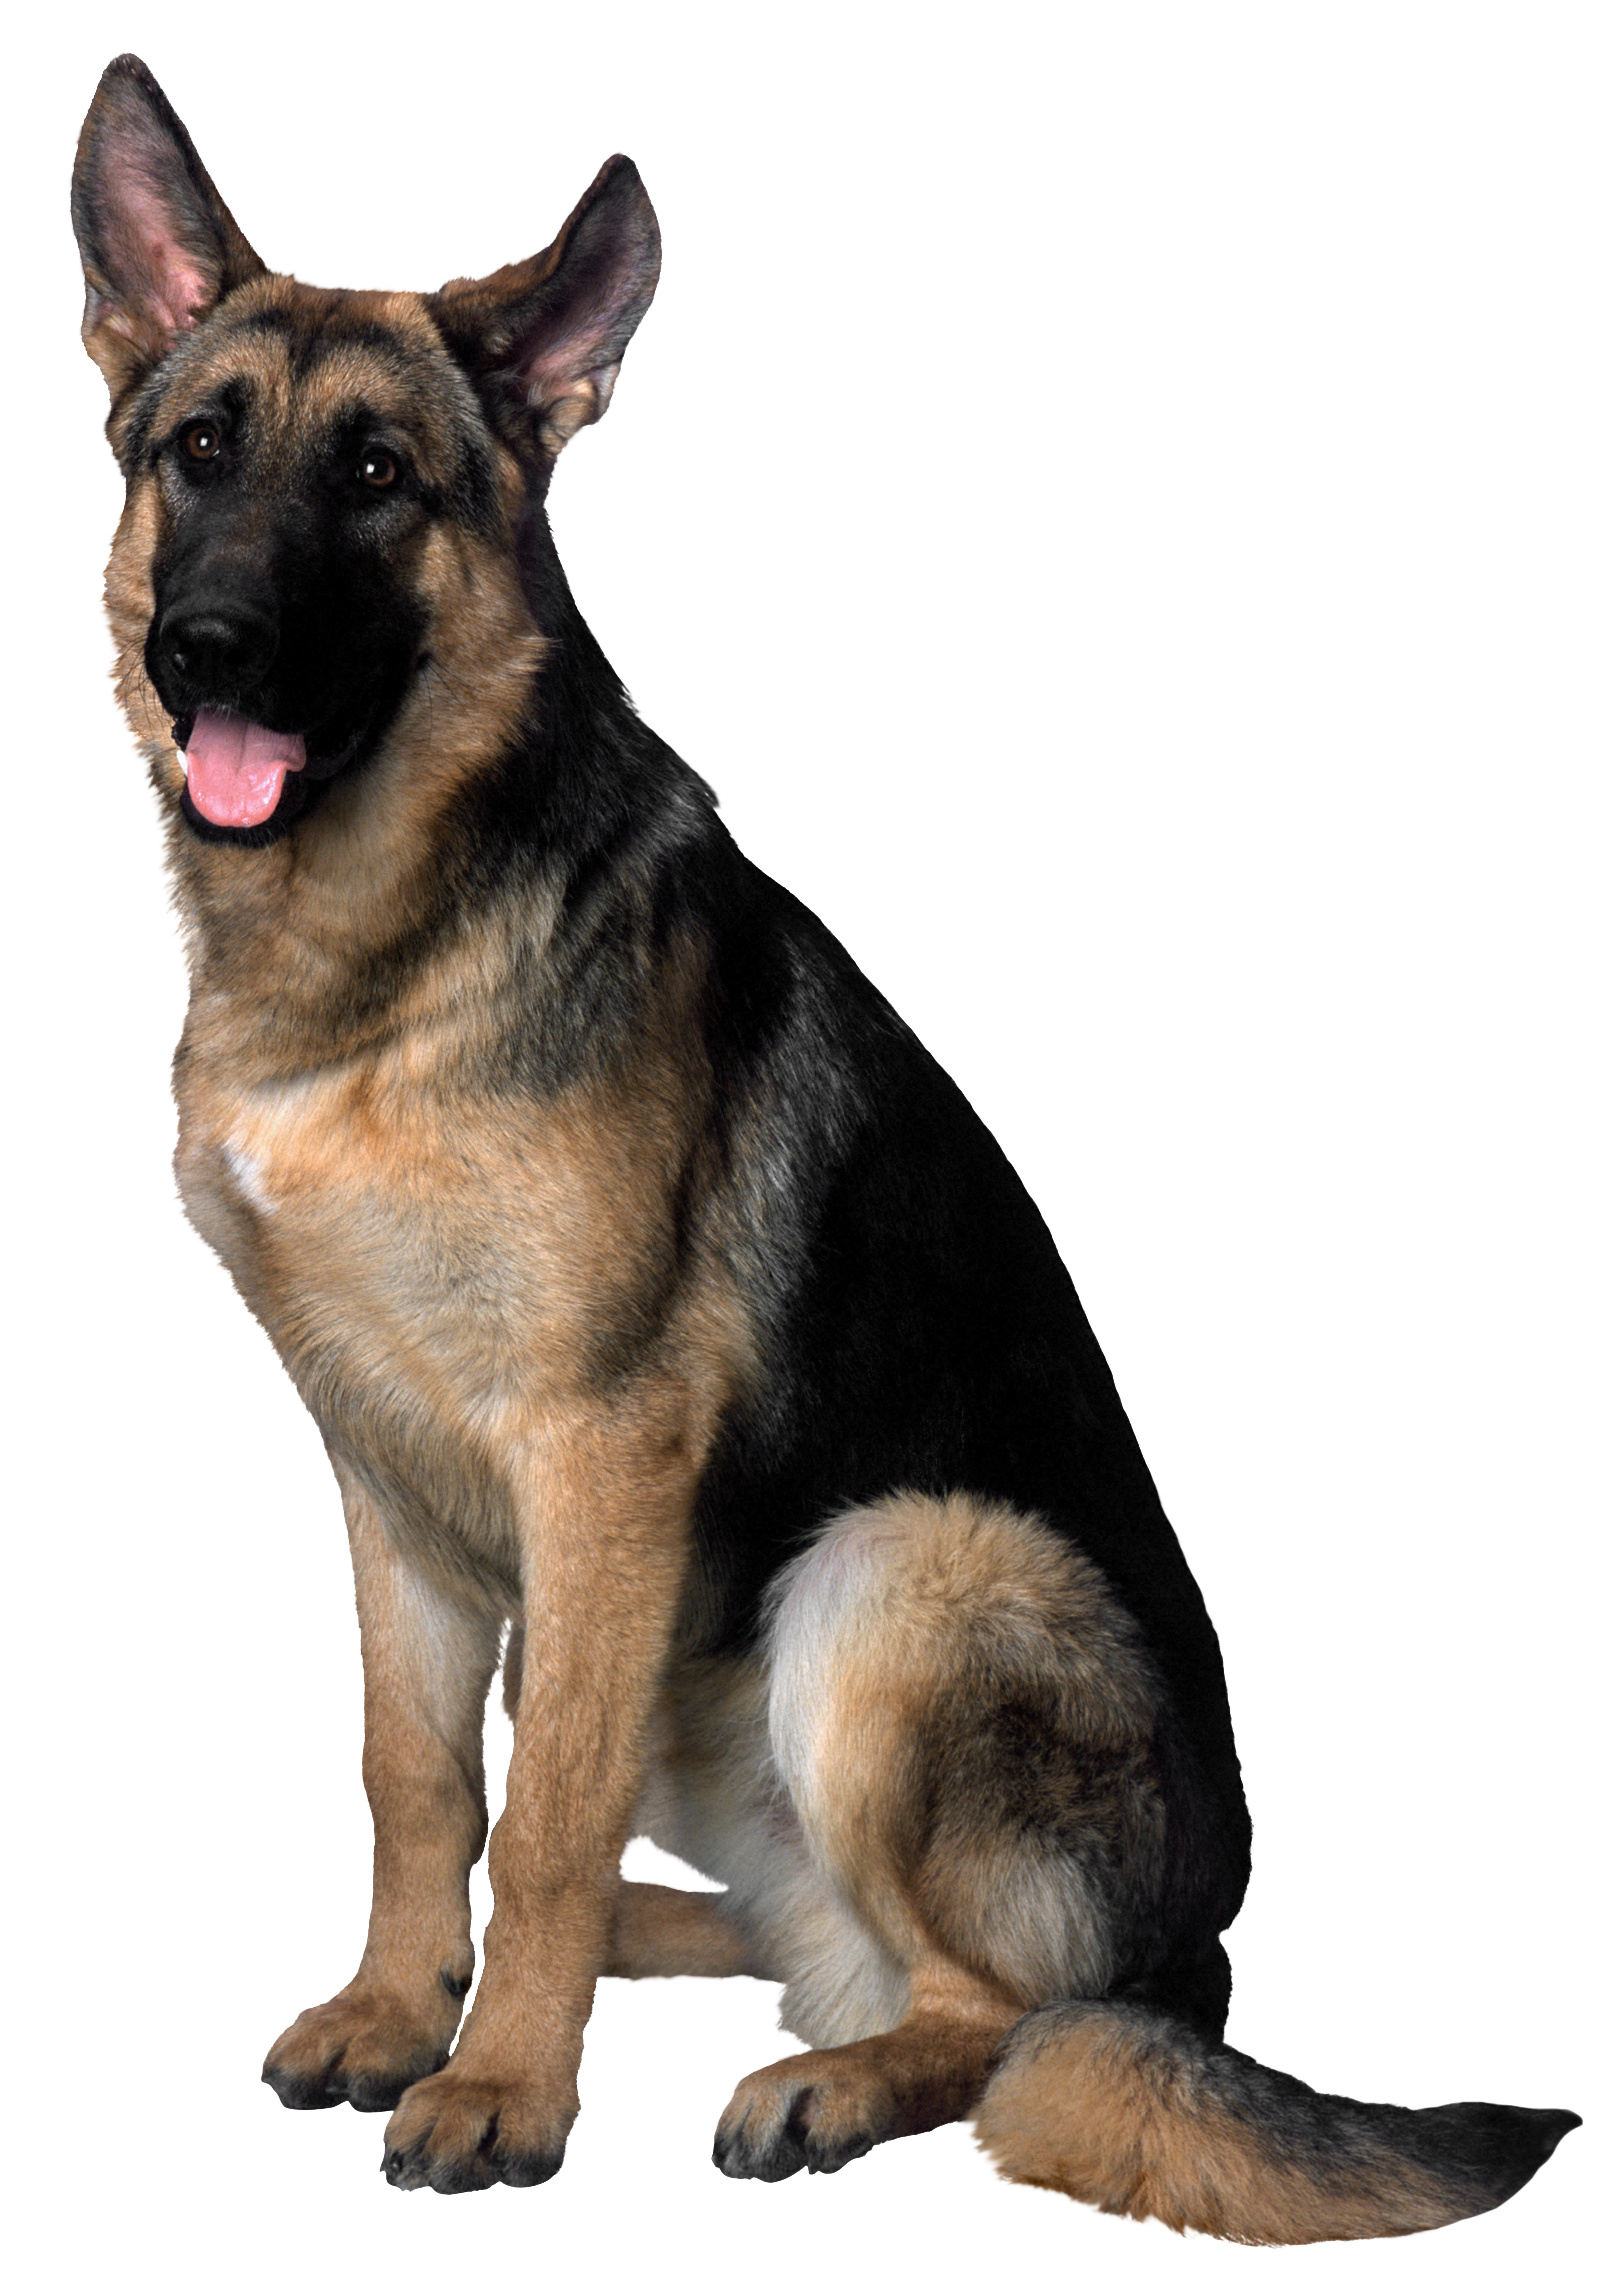 Dog png image. Clip art gallery yopriceville